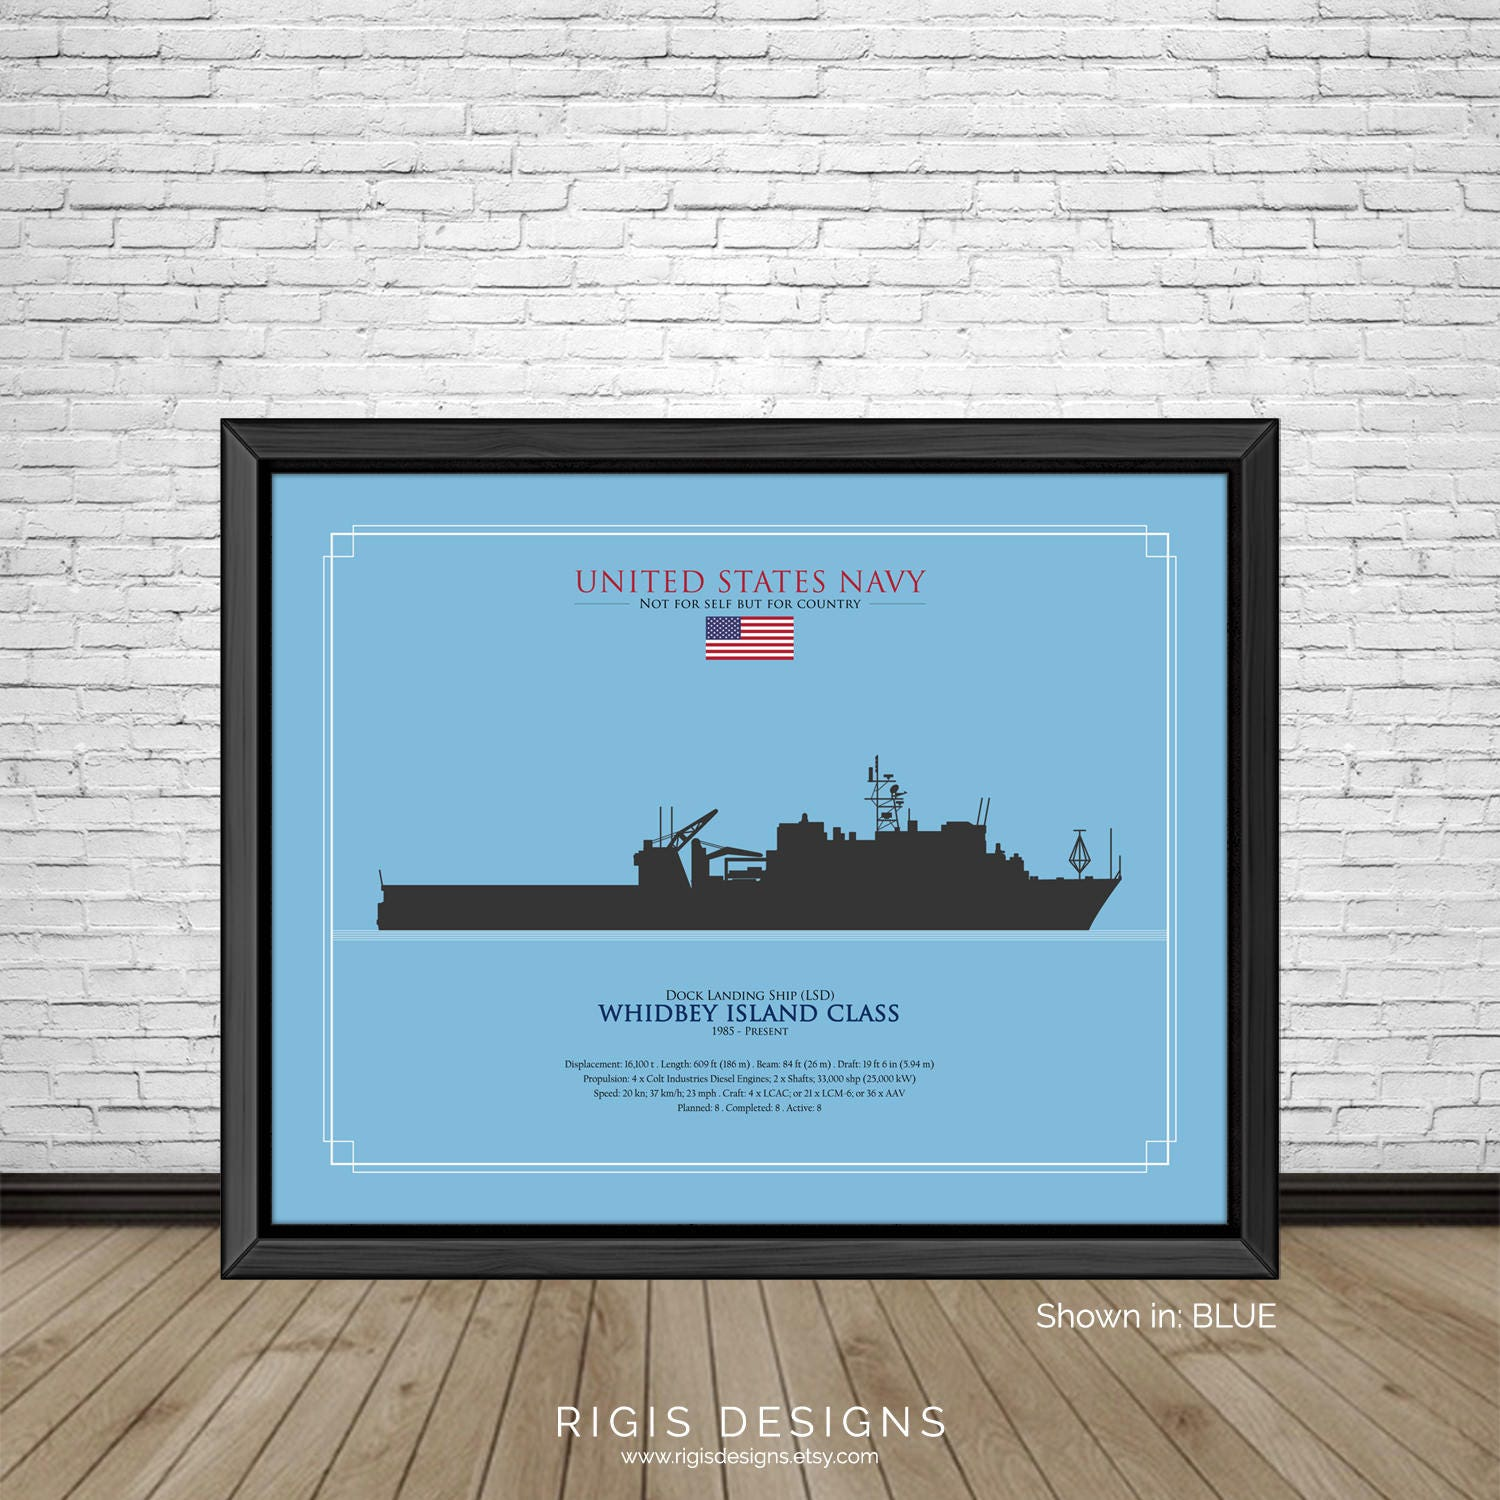 US Navy Ship Silhouette Whidbey Island Class Dock Landing Ship LSD